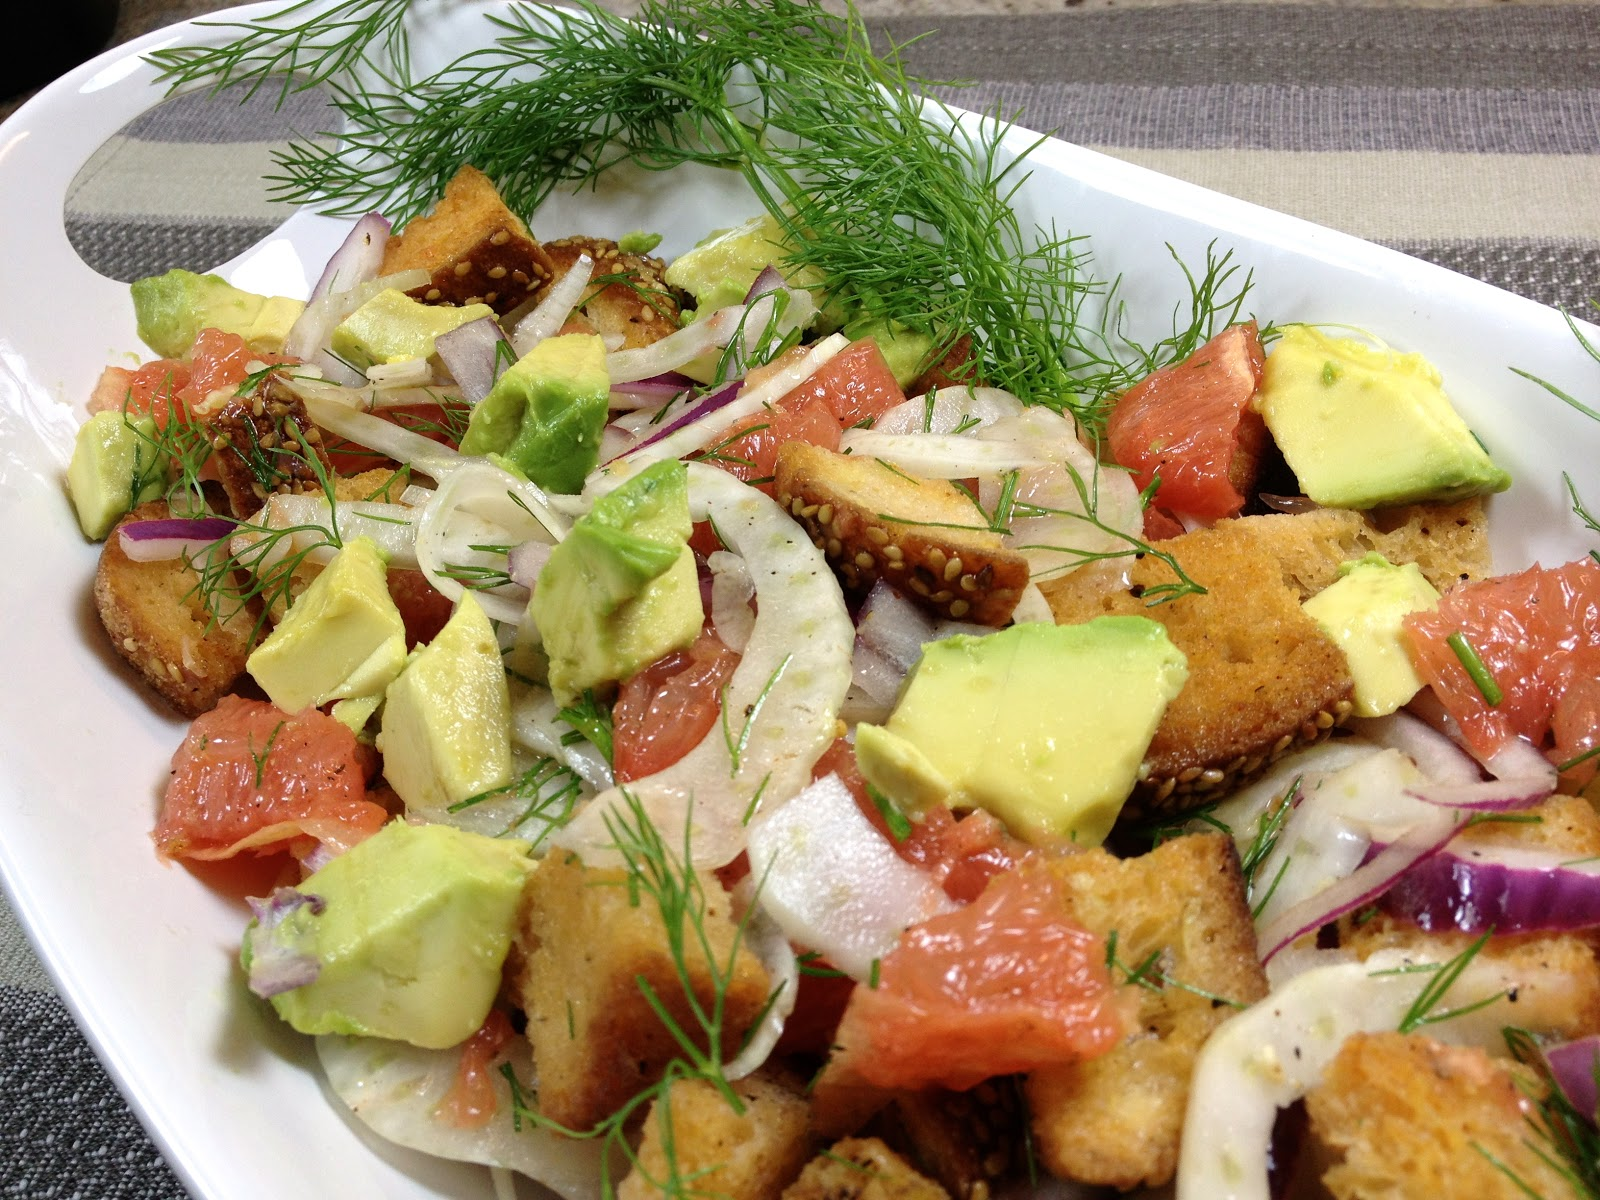 ... : Grapefruit - Panzanella Salad with Red Grapefruit, Avocado & Fennel